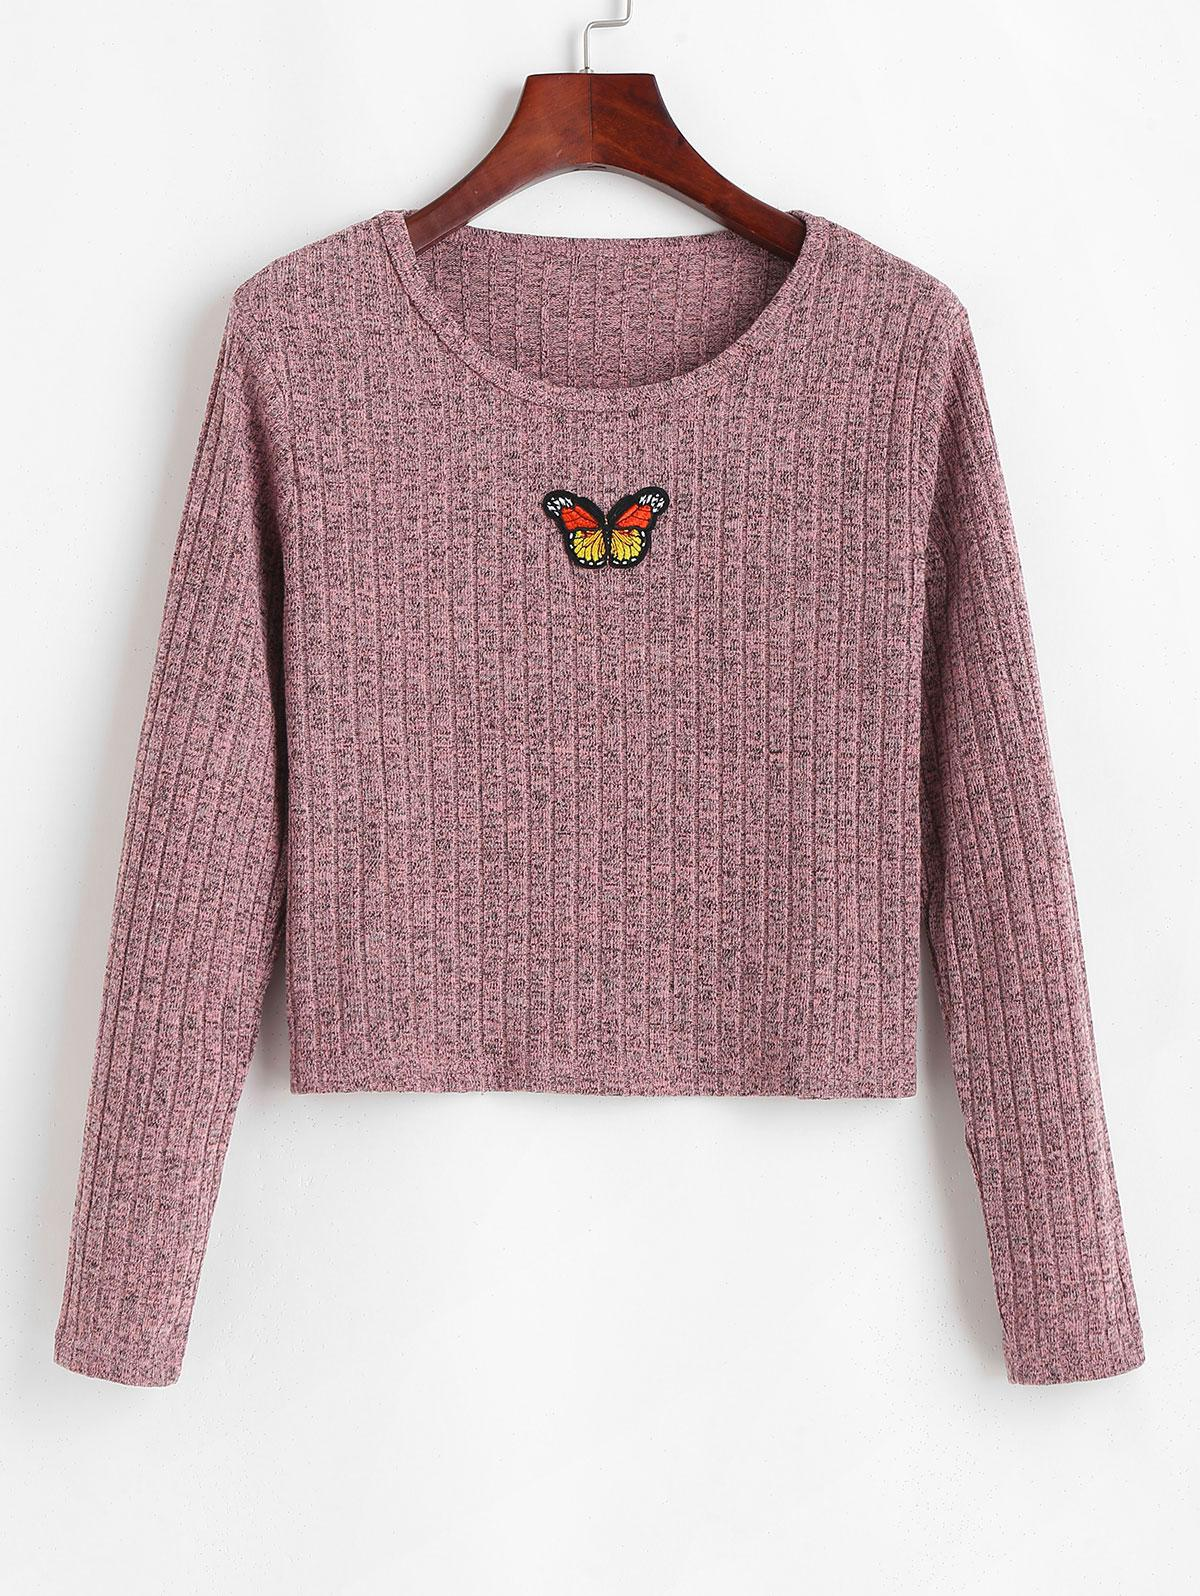 Ribbed Heathered Butterfly Patched Top